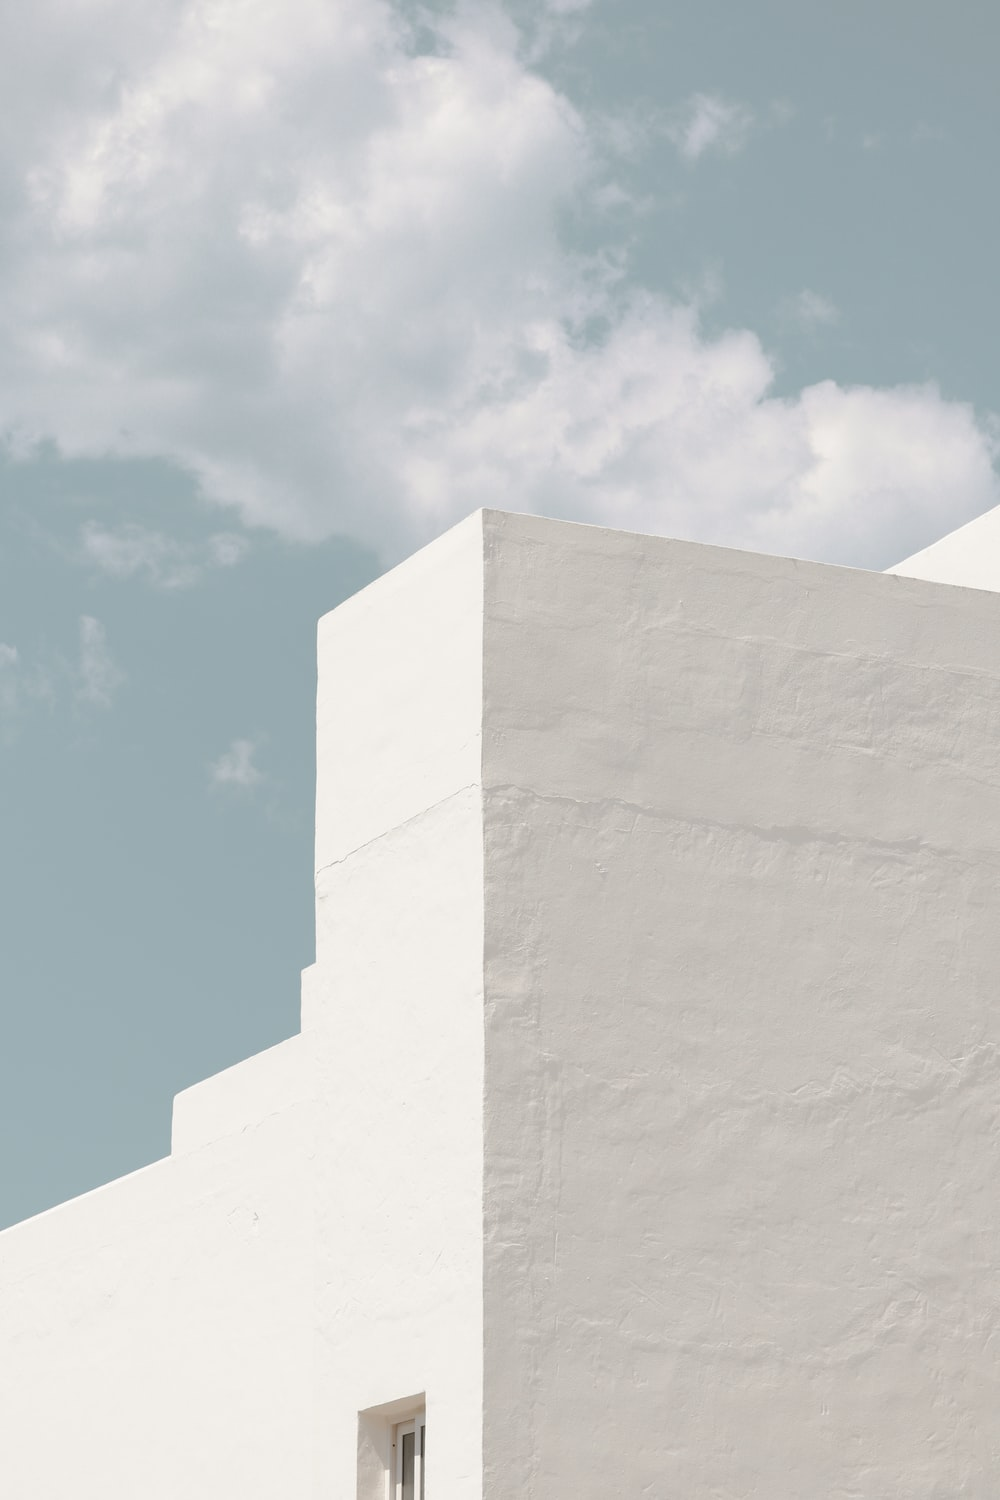 Minimalist Architecture Pictures   Download Free Images on Unsplash